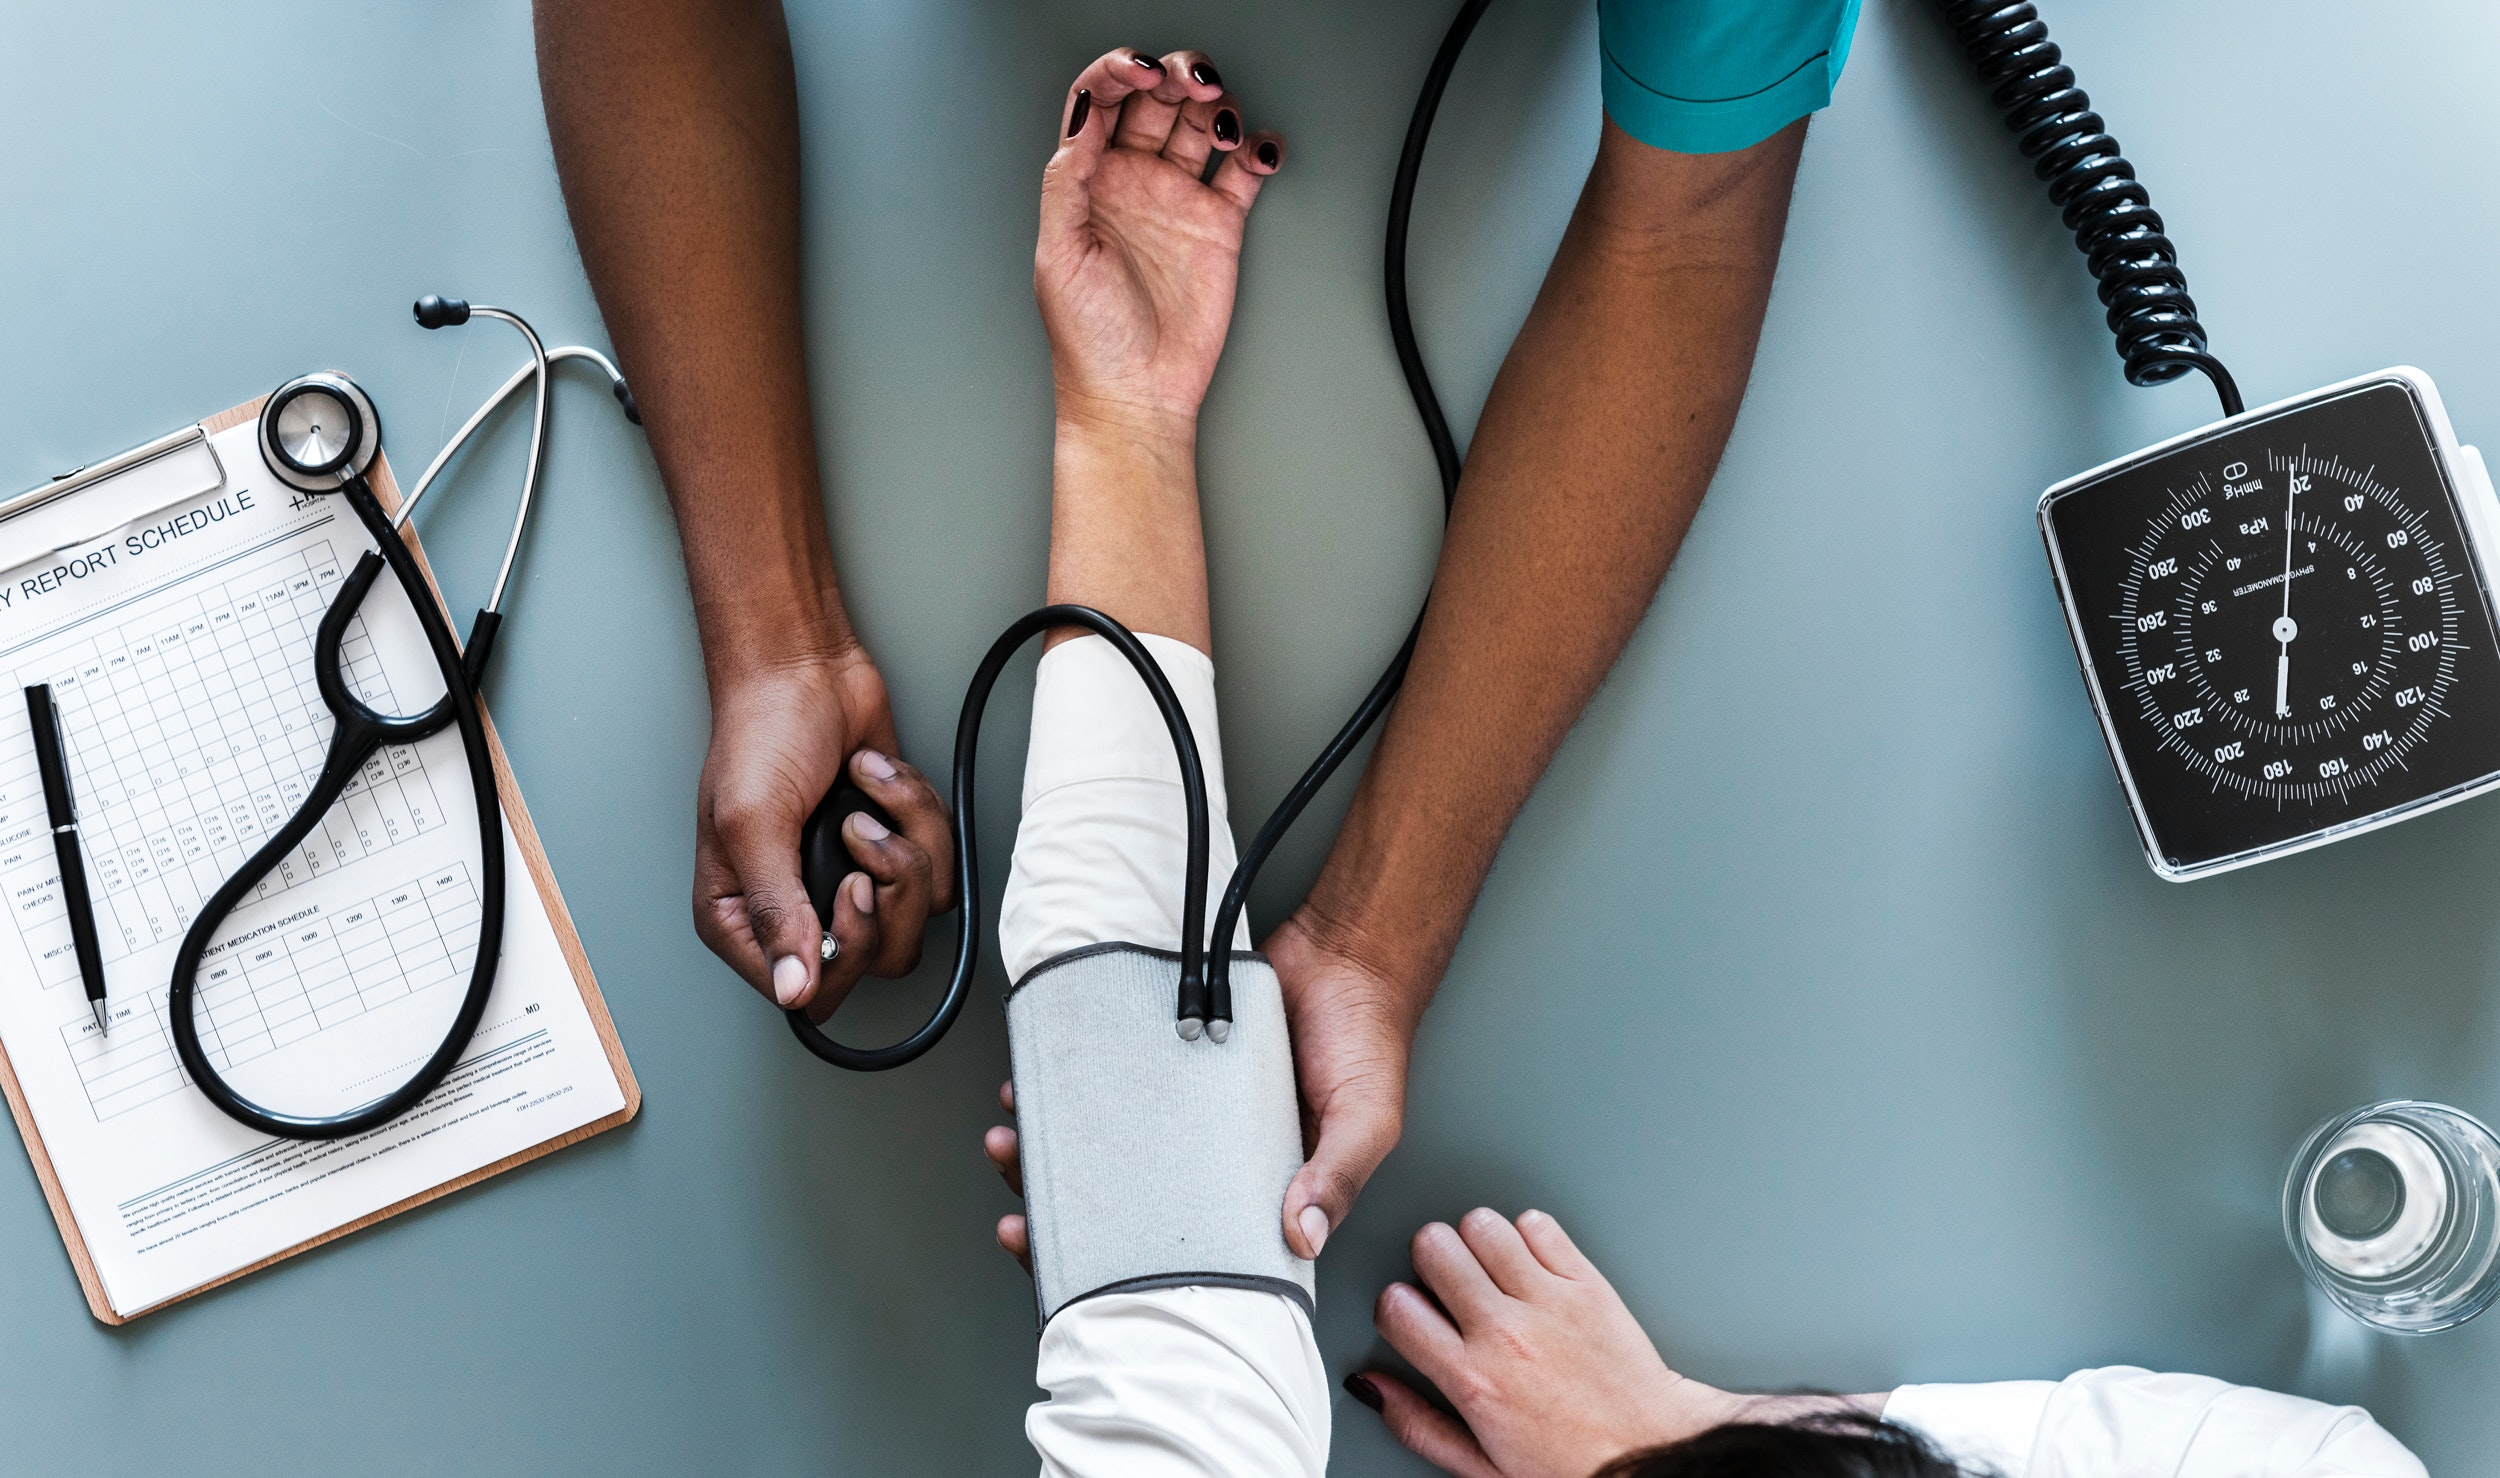 Health Screening   Have your blood pressure checked, fitness assessed, or posture evaluated to see where you're at and identify health risk factors.